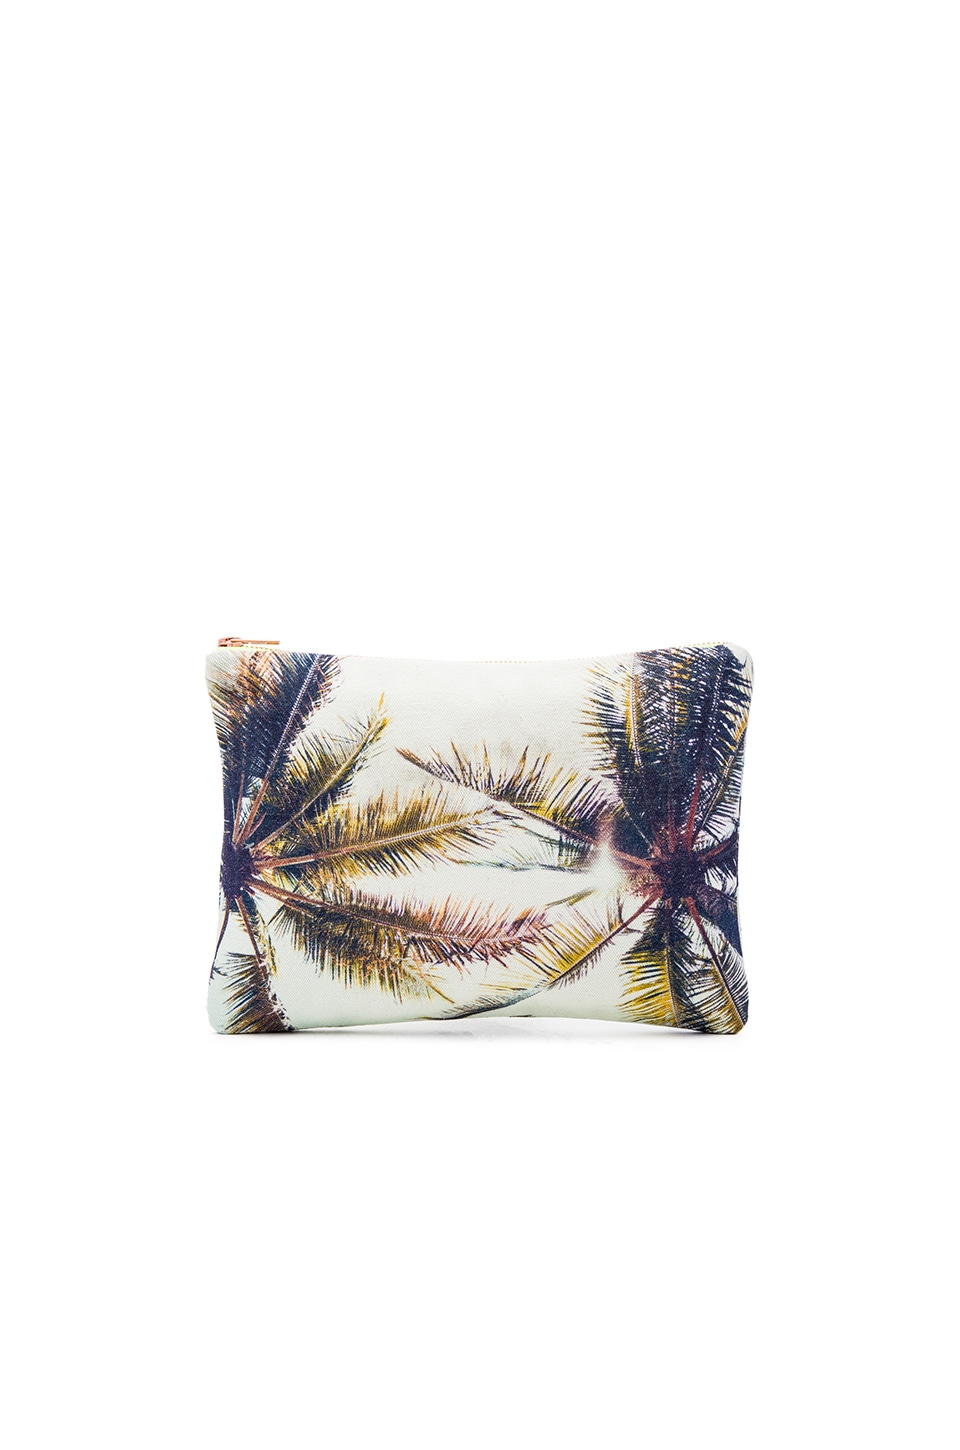 Samudra Twin Palms Flat Pouch in Multi